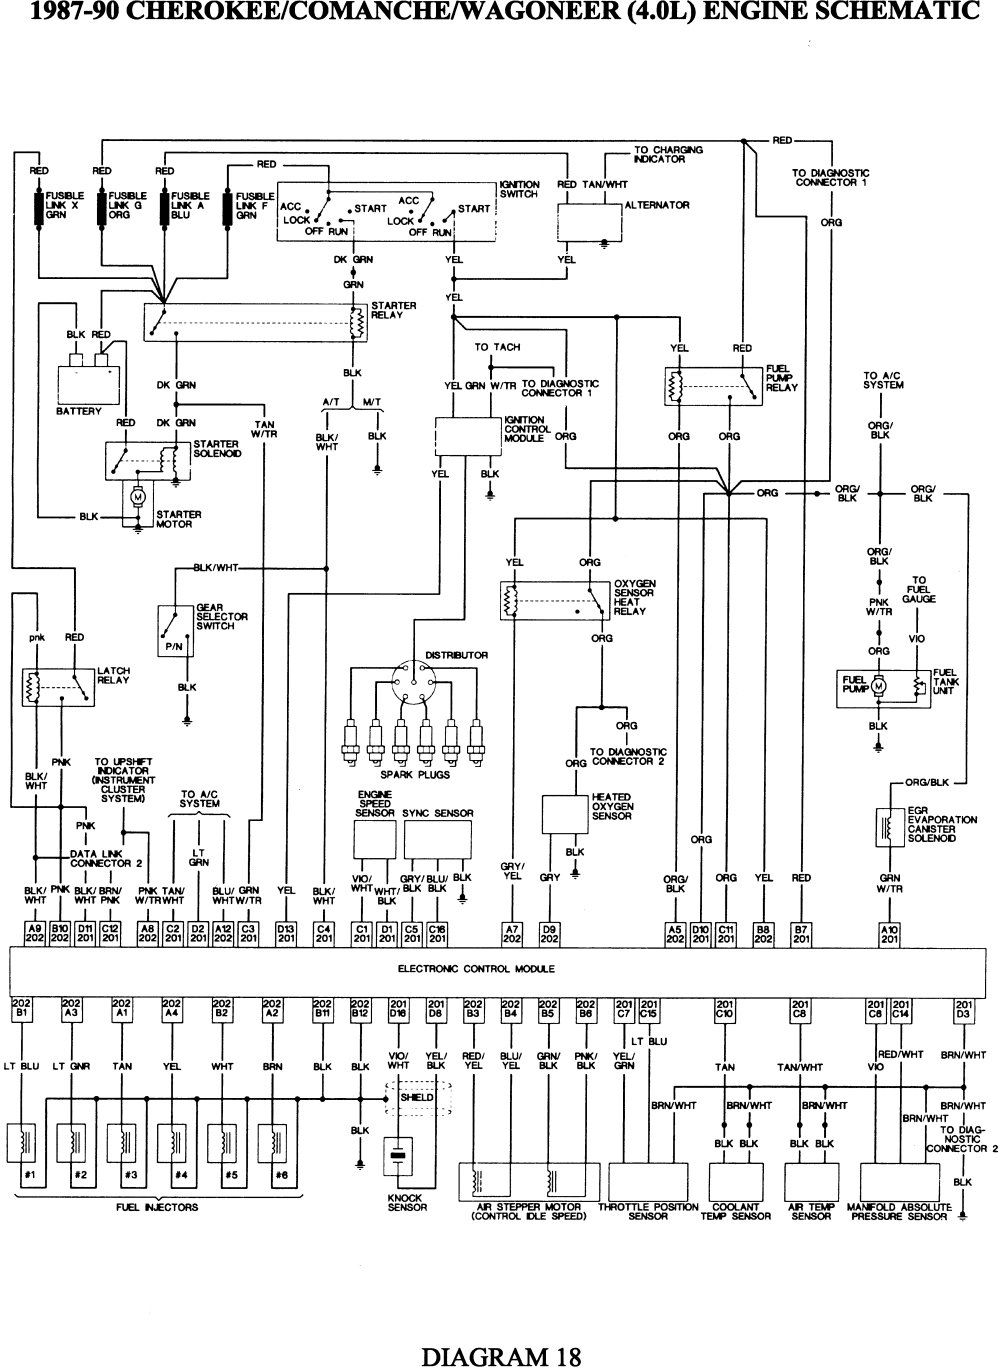 1997 jeep wrangler electrical diagram wiring diagram user 1997 jeep wrangler alternator diagram on jeep wrangler electrical [ 1000 x 1369 Pixel ]